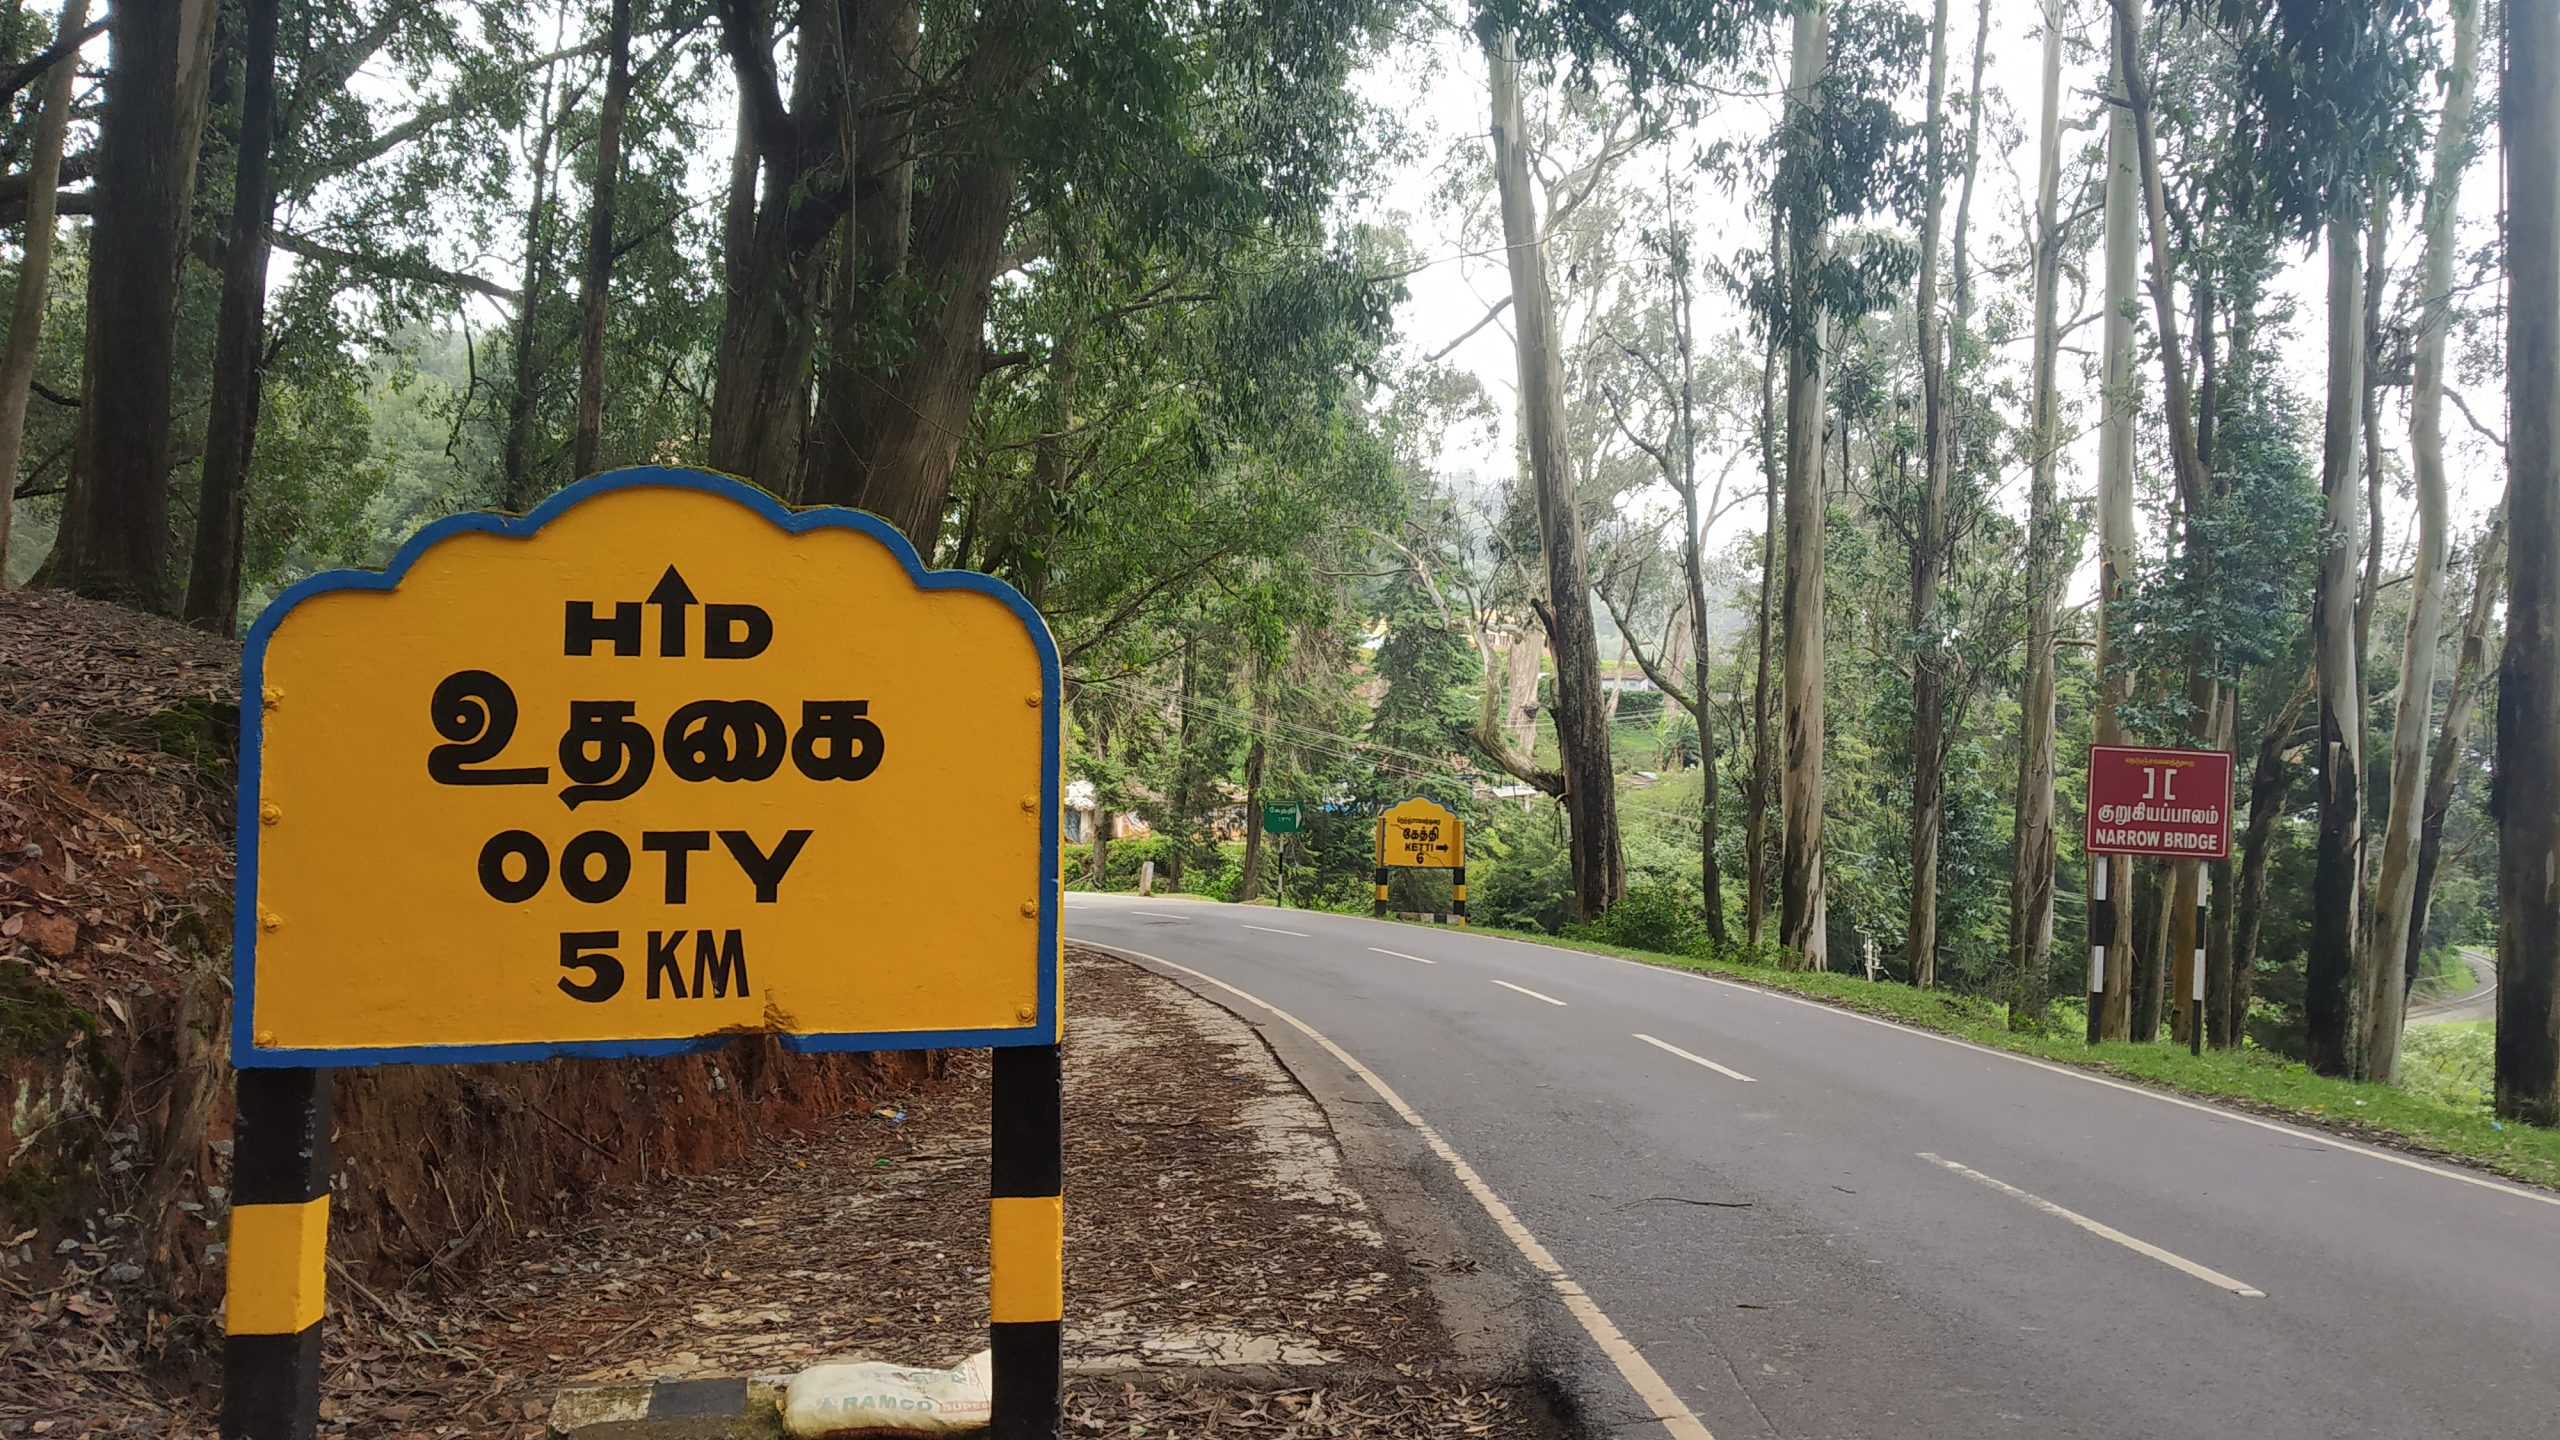 Ooty road sign